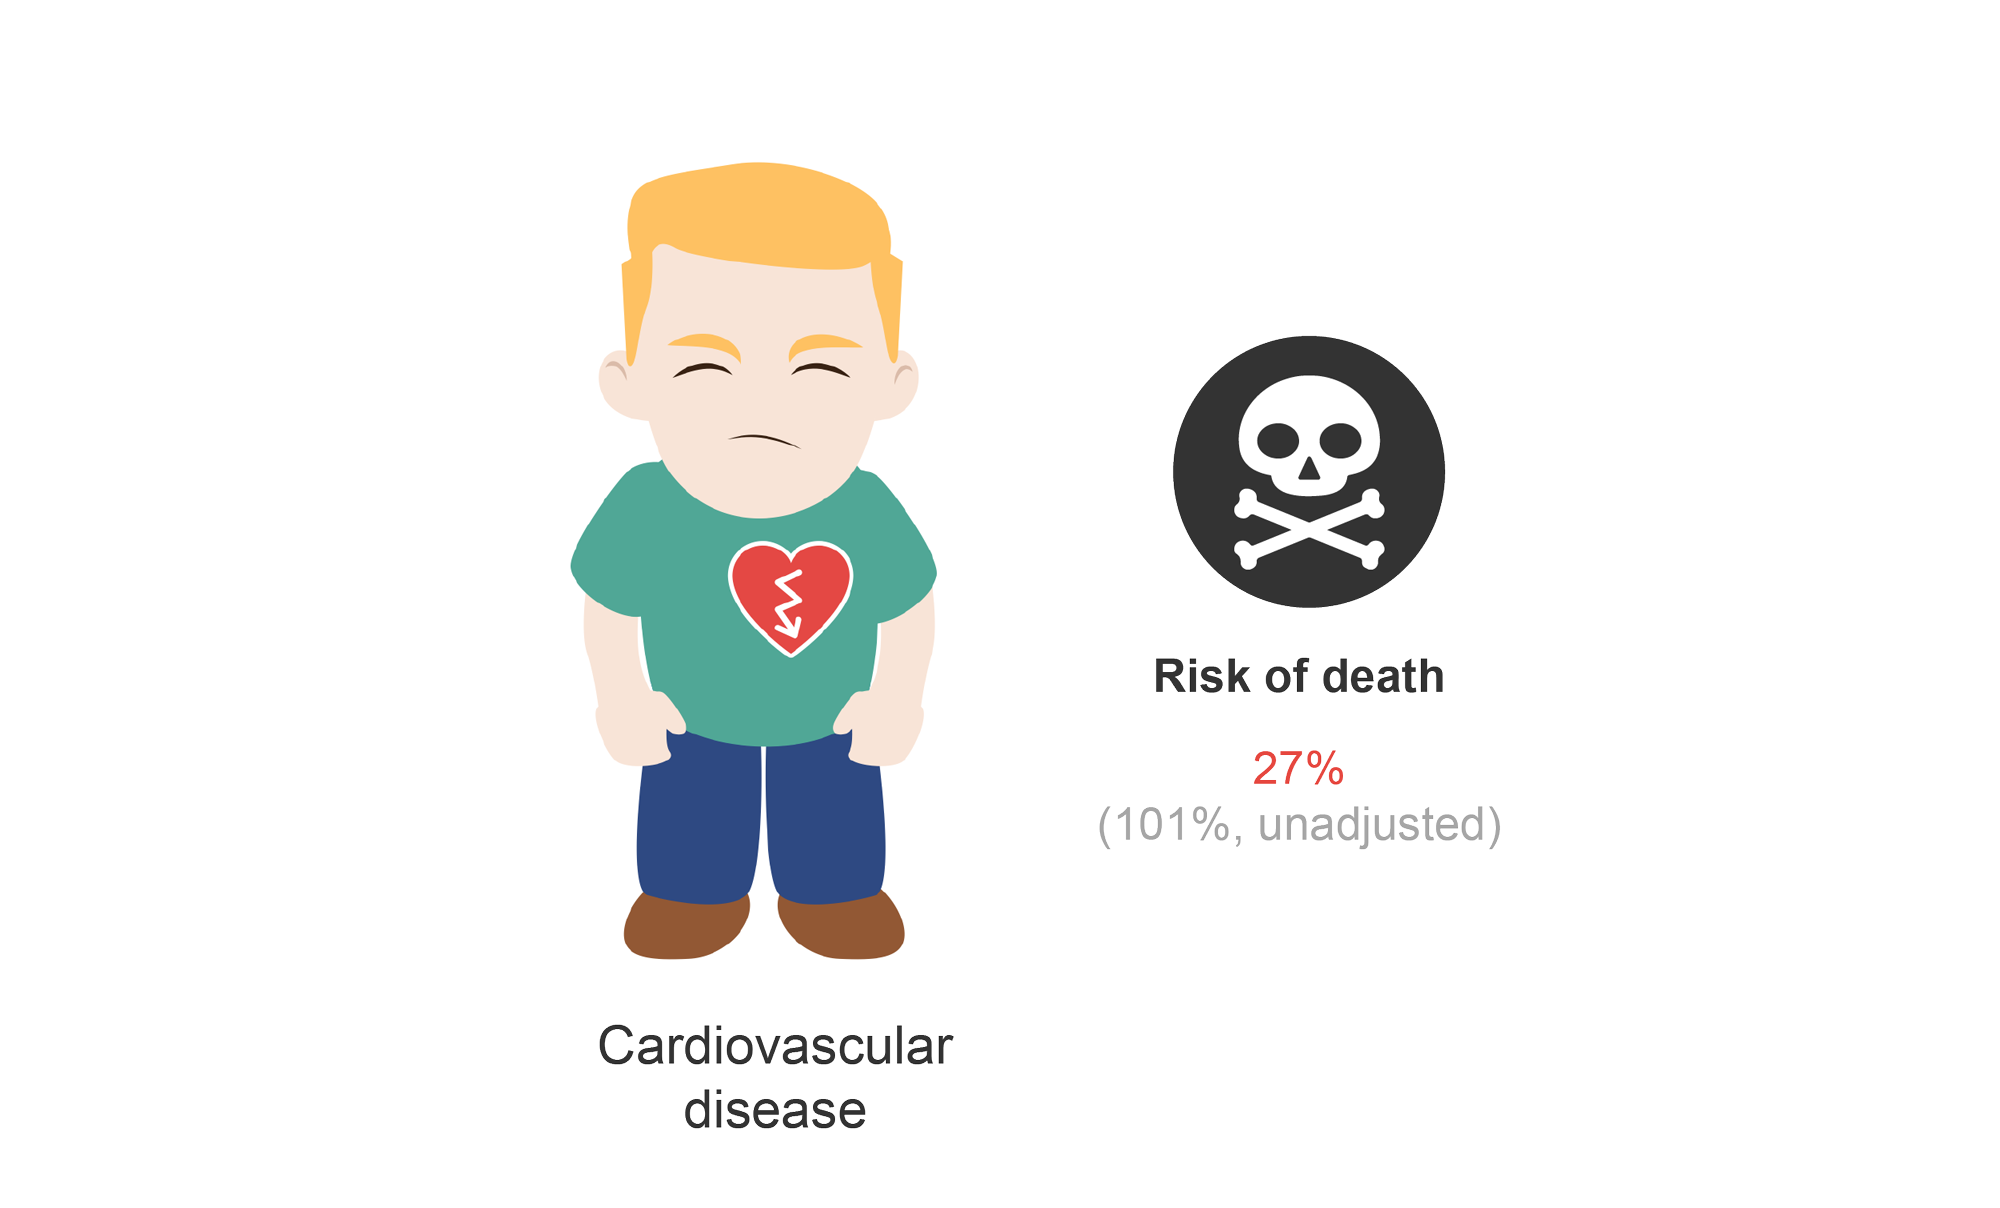 Male patient with cardiovascular disease and risk of death (27%). Cartoon